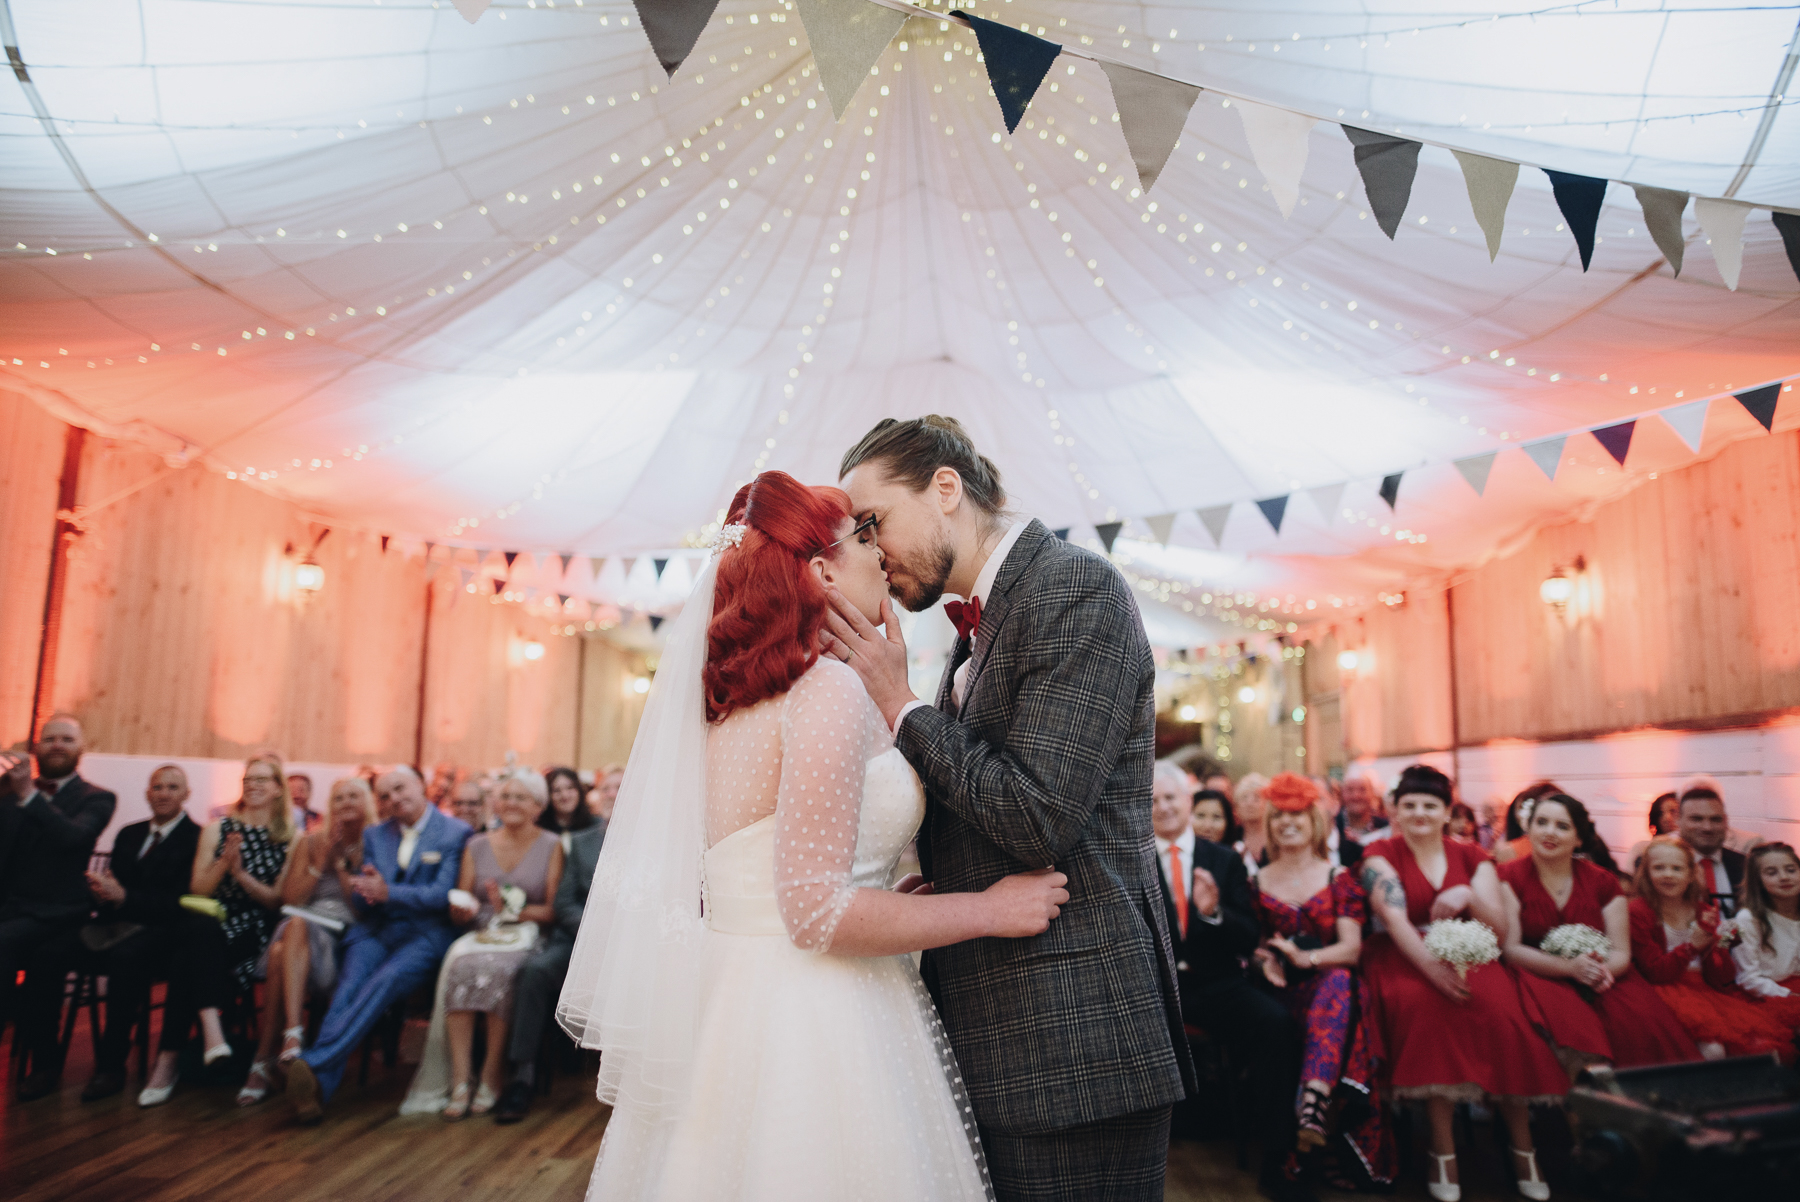 Alternative_Manchester_Wedding_Photography_The_Pin-Up_Bride_Photography-72.jpg